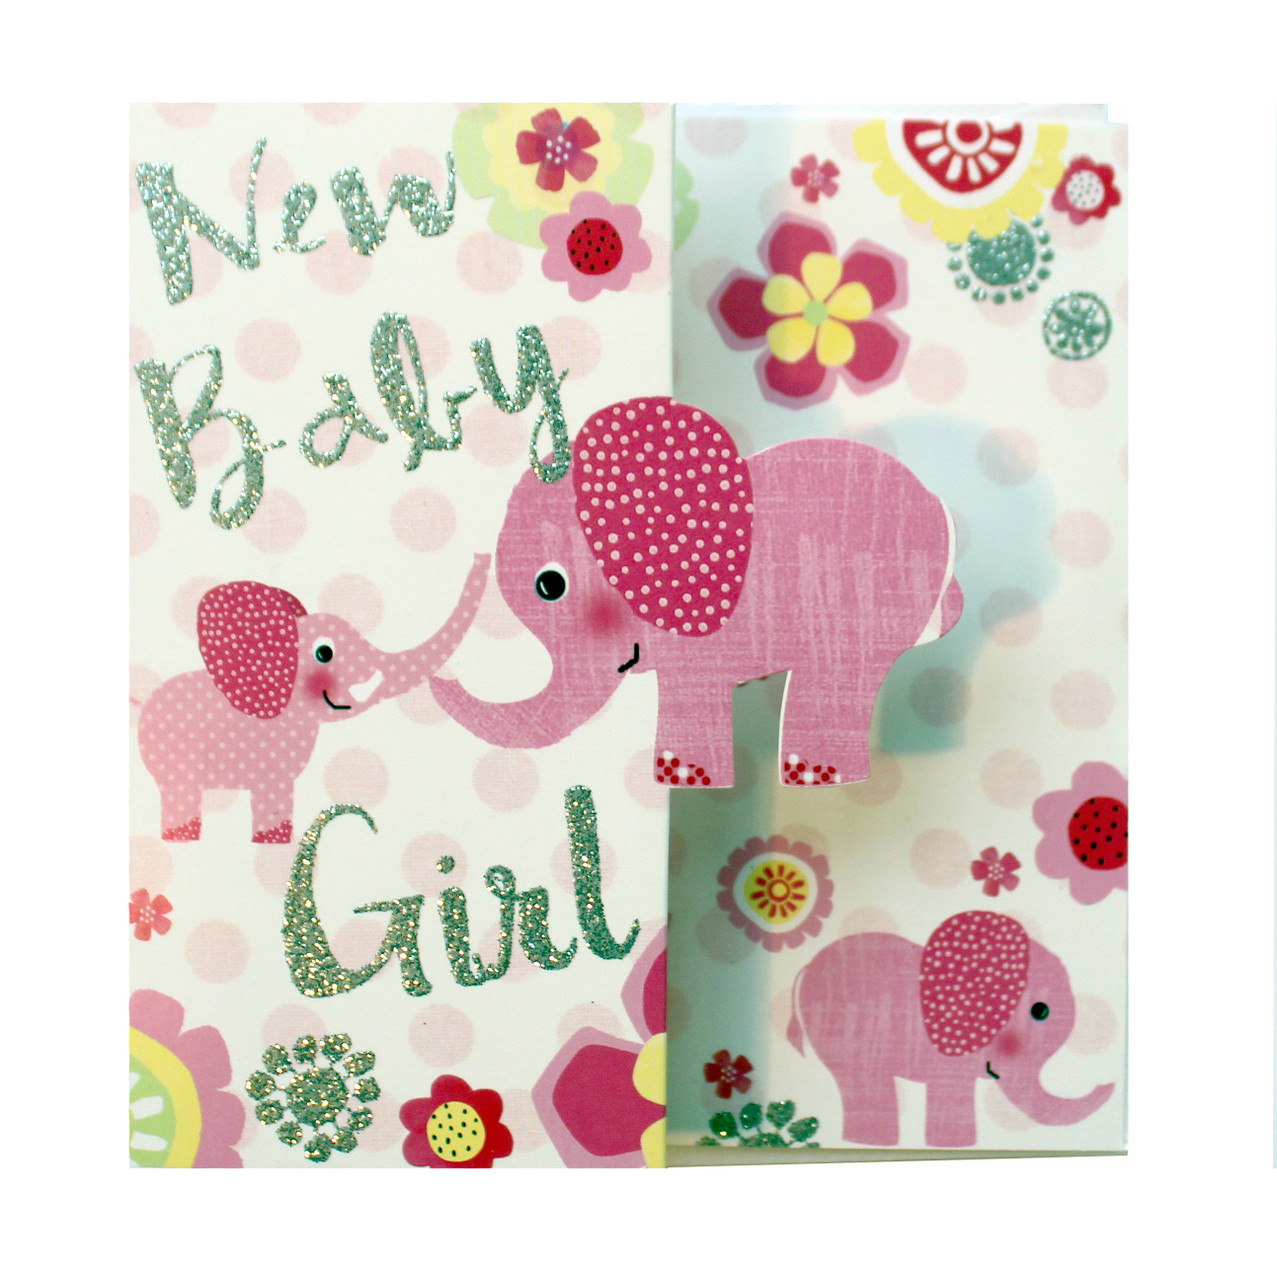 New baby girl greetings card peel cards present company new baby girl greetings card m4hsunfo